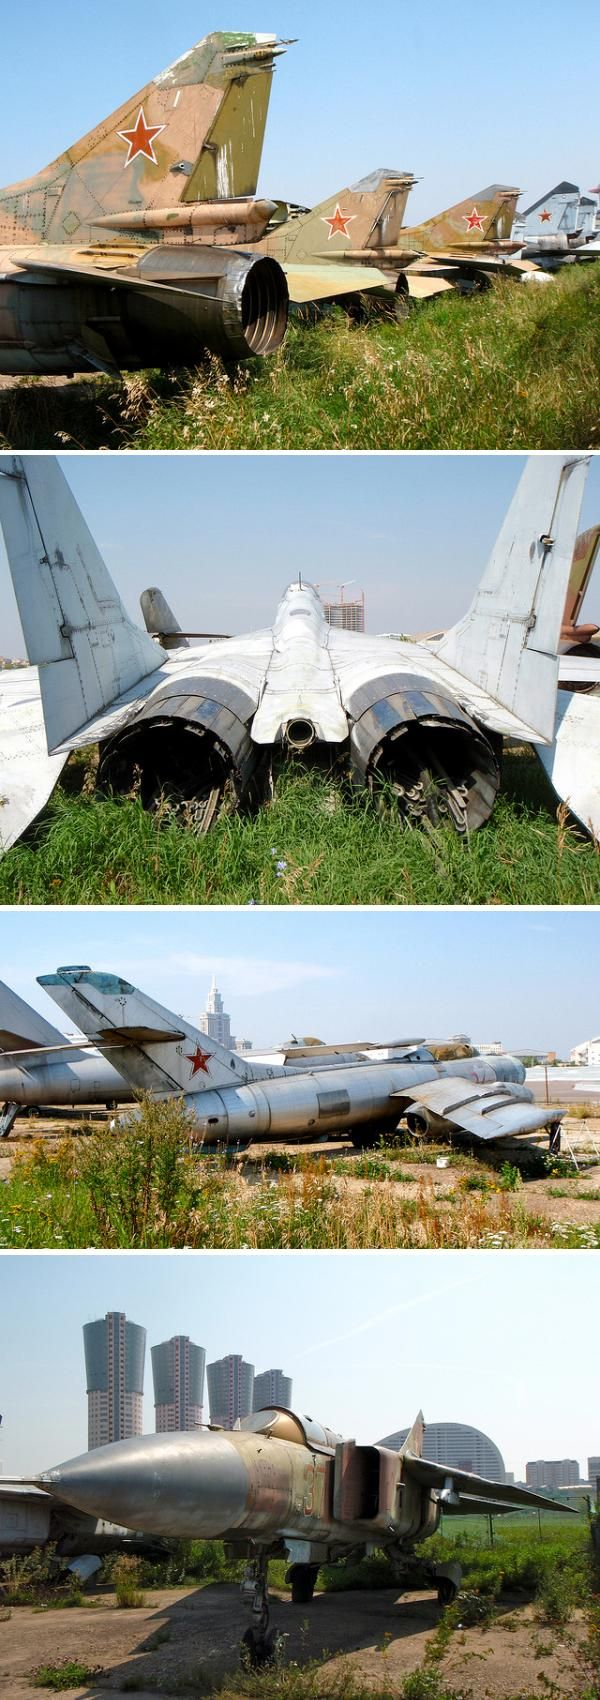 derelict migs moscow Abandoned Aircraft, Airfields, Airbases and Airport Terminals